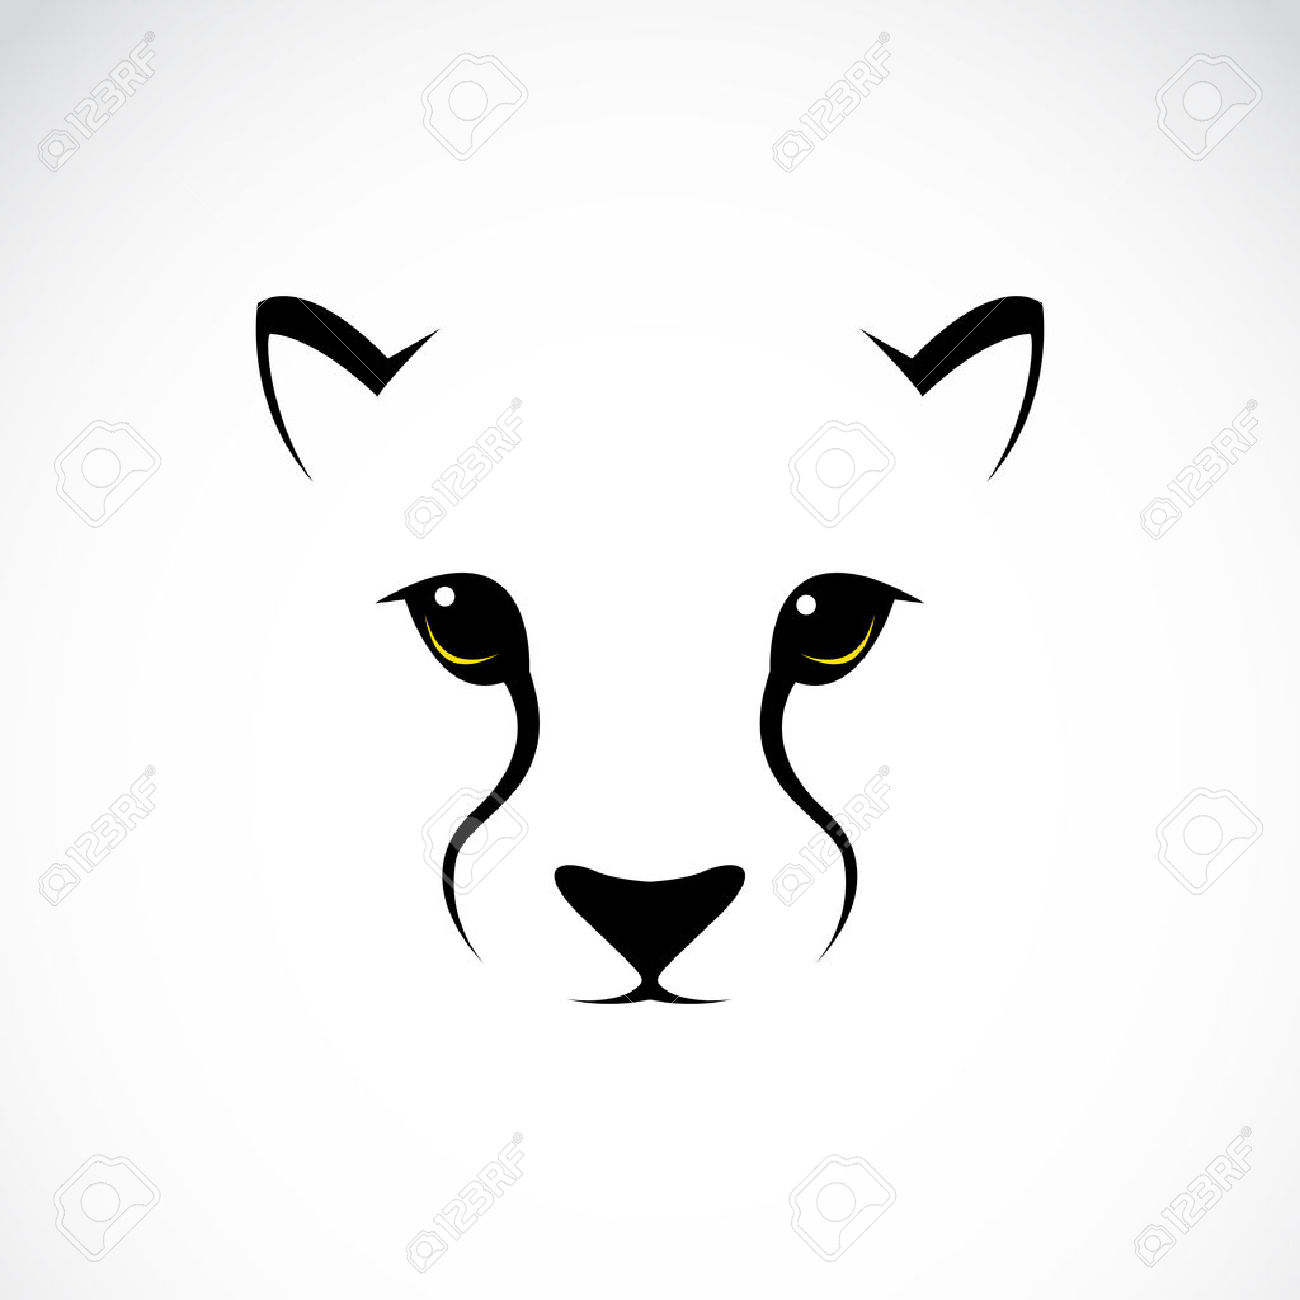 Vector Image Of An Cheetah Face On White Background Royalty Free.